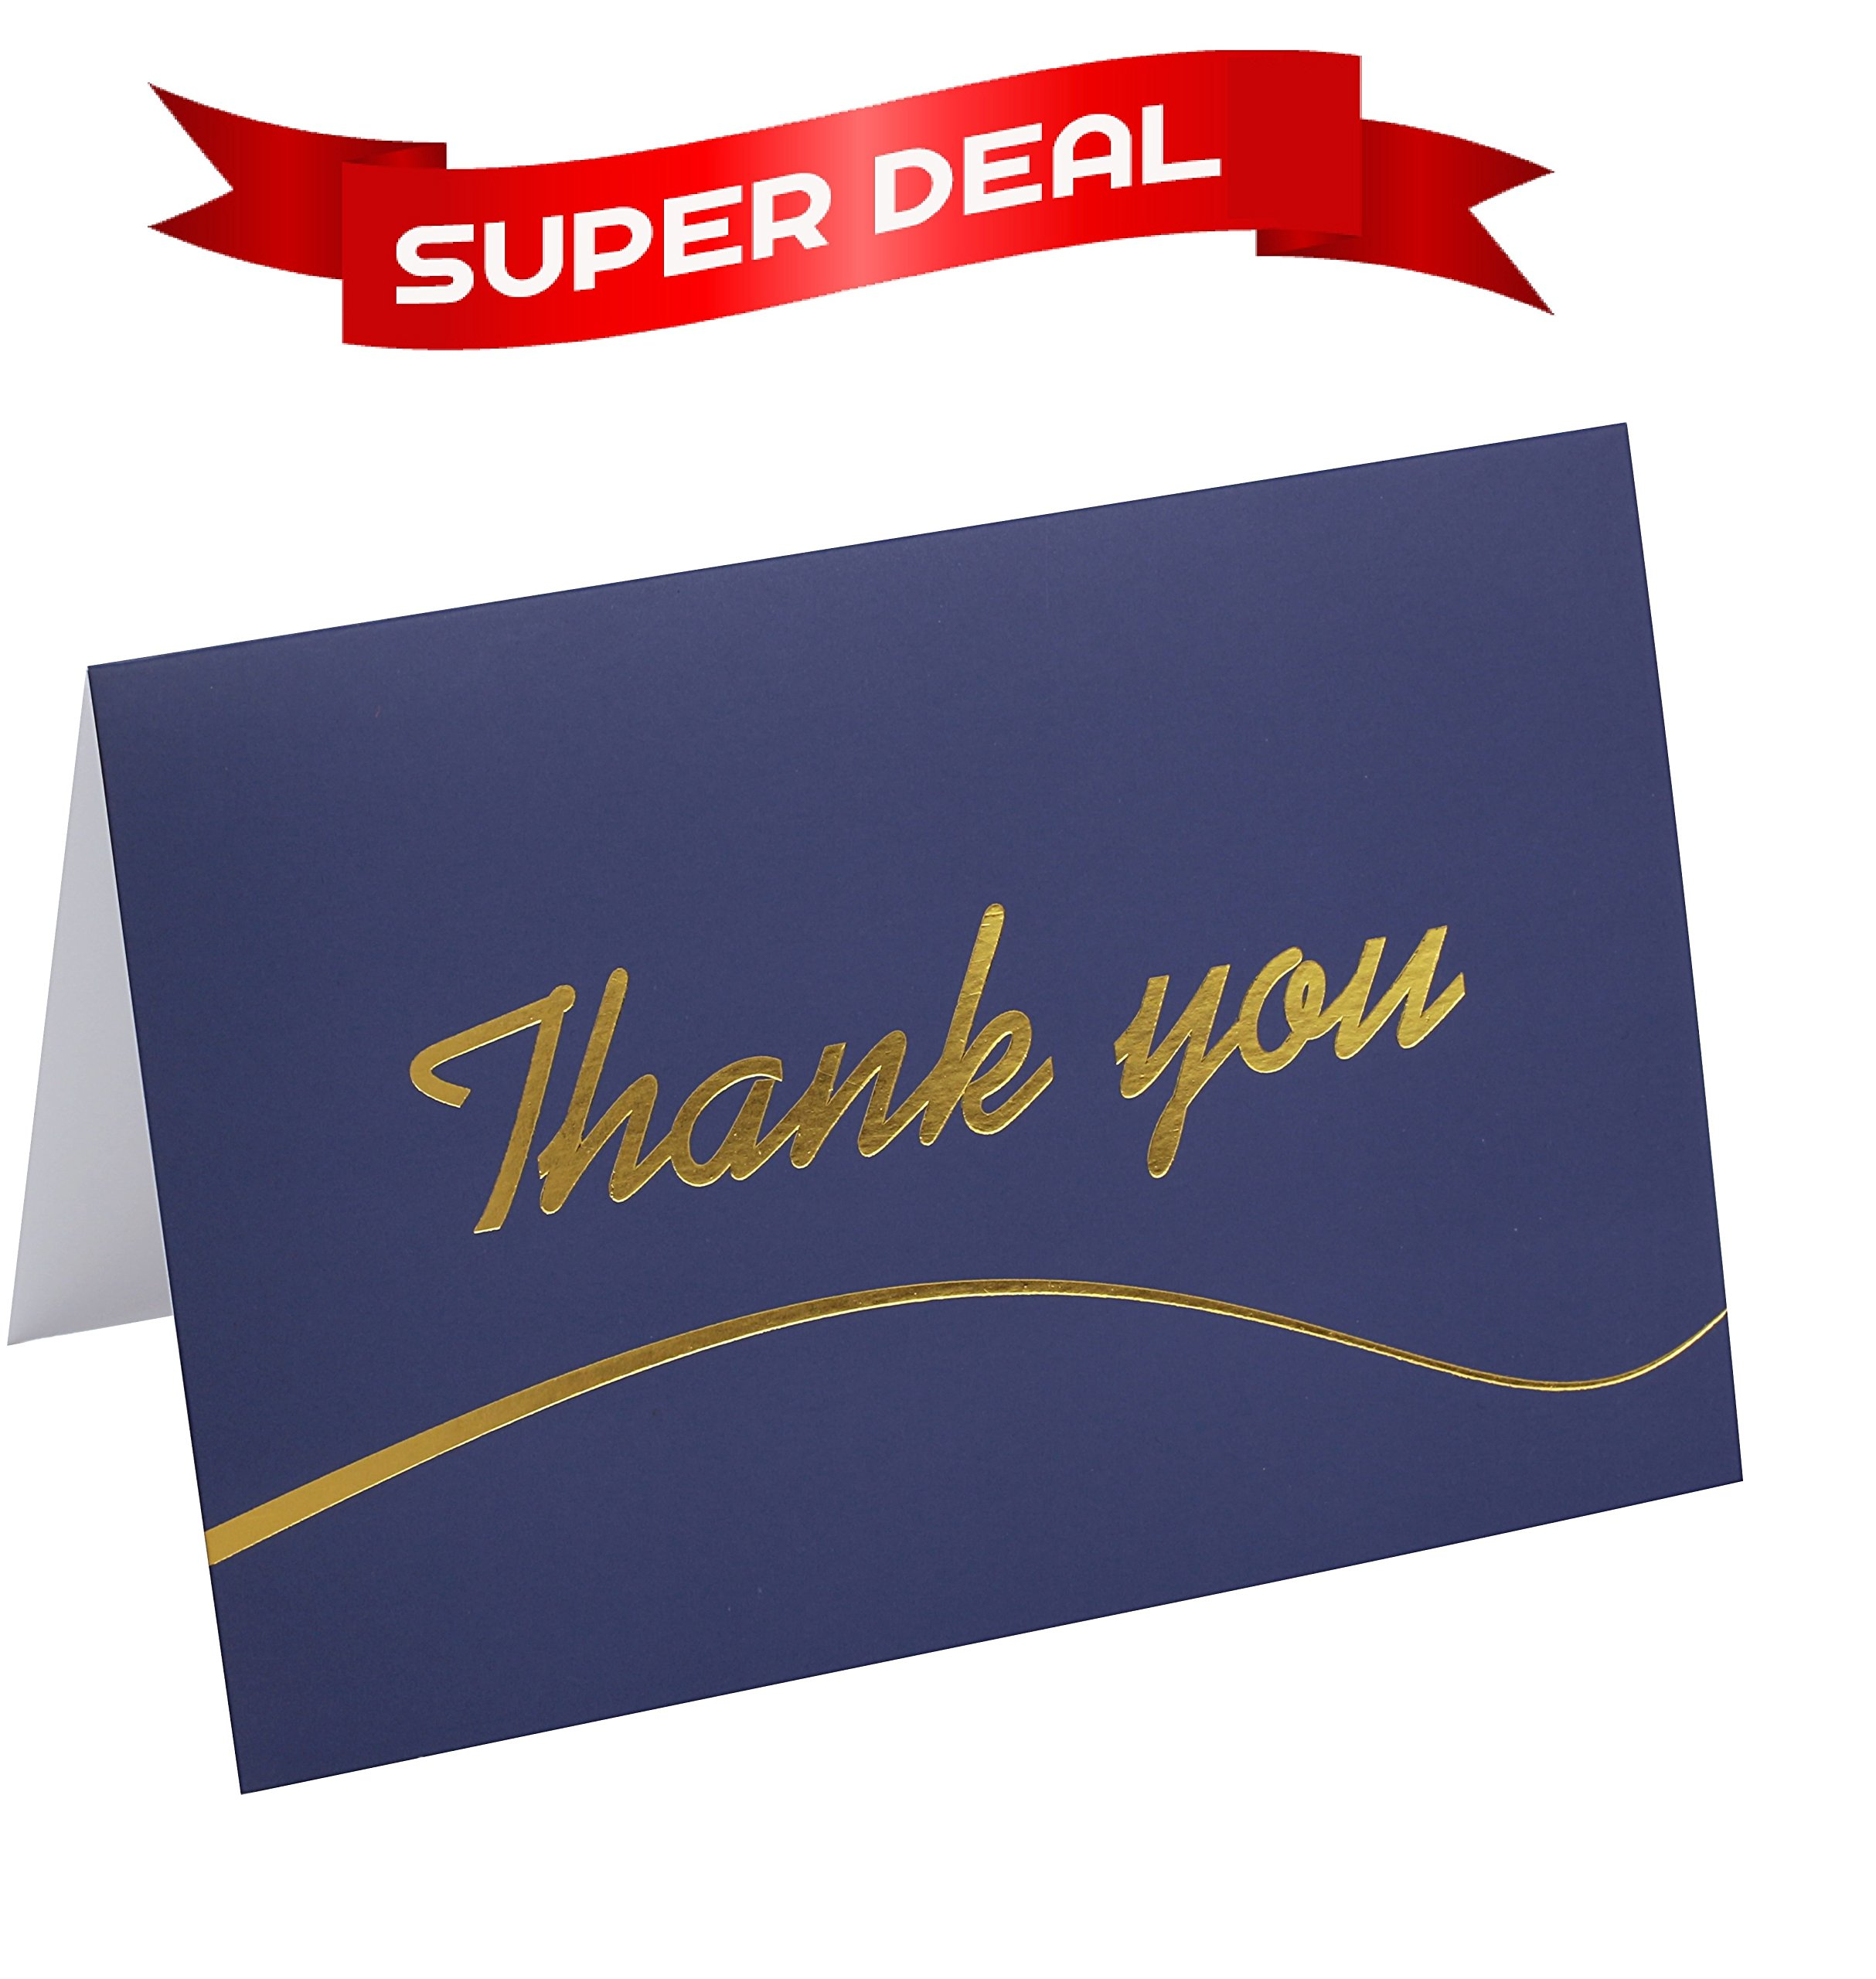 110 Elegant Thank You Cards in Blue with Envelopes and Stickers - Bulk Notes Embossed with Gold Foil Letters for Weddings, Graduations, Engagements, Business, Formal, Baby Showers, 4x6 in a Sturdy Box